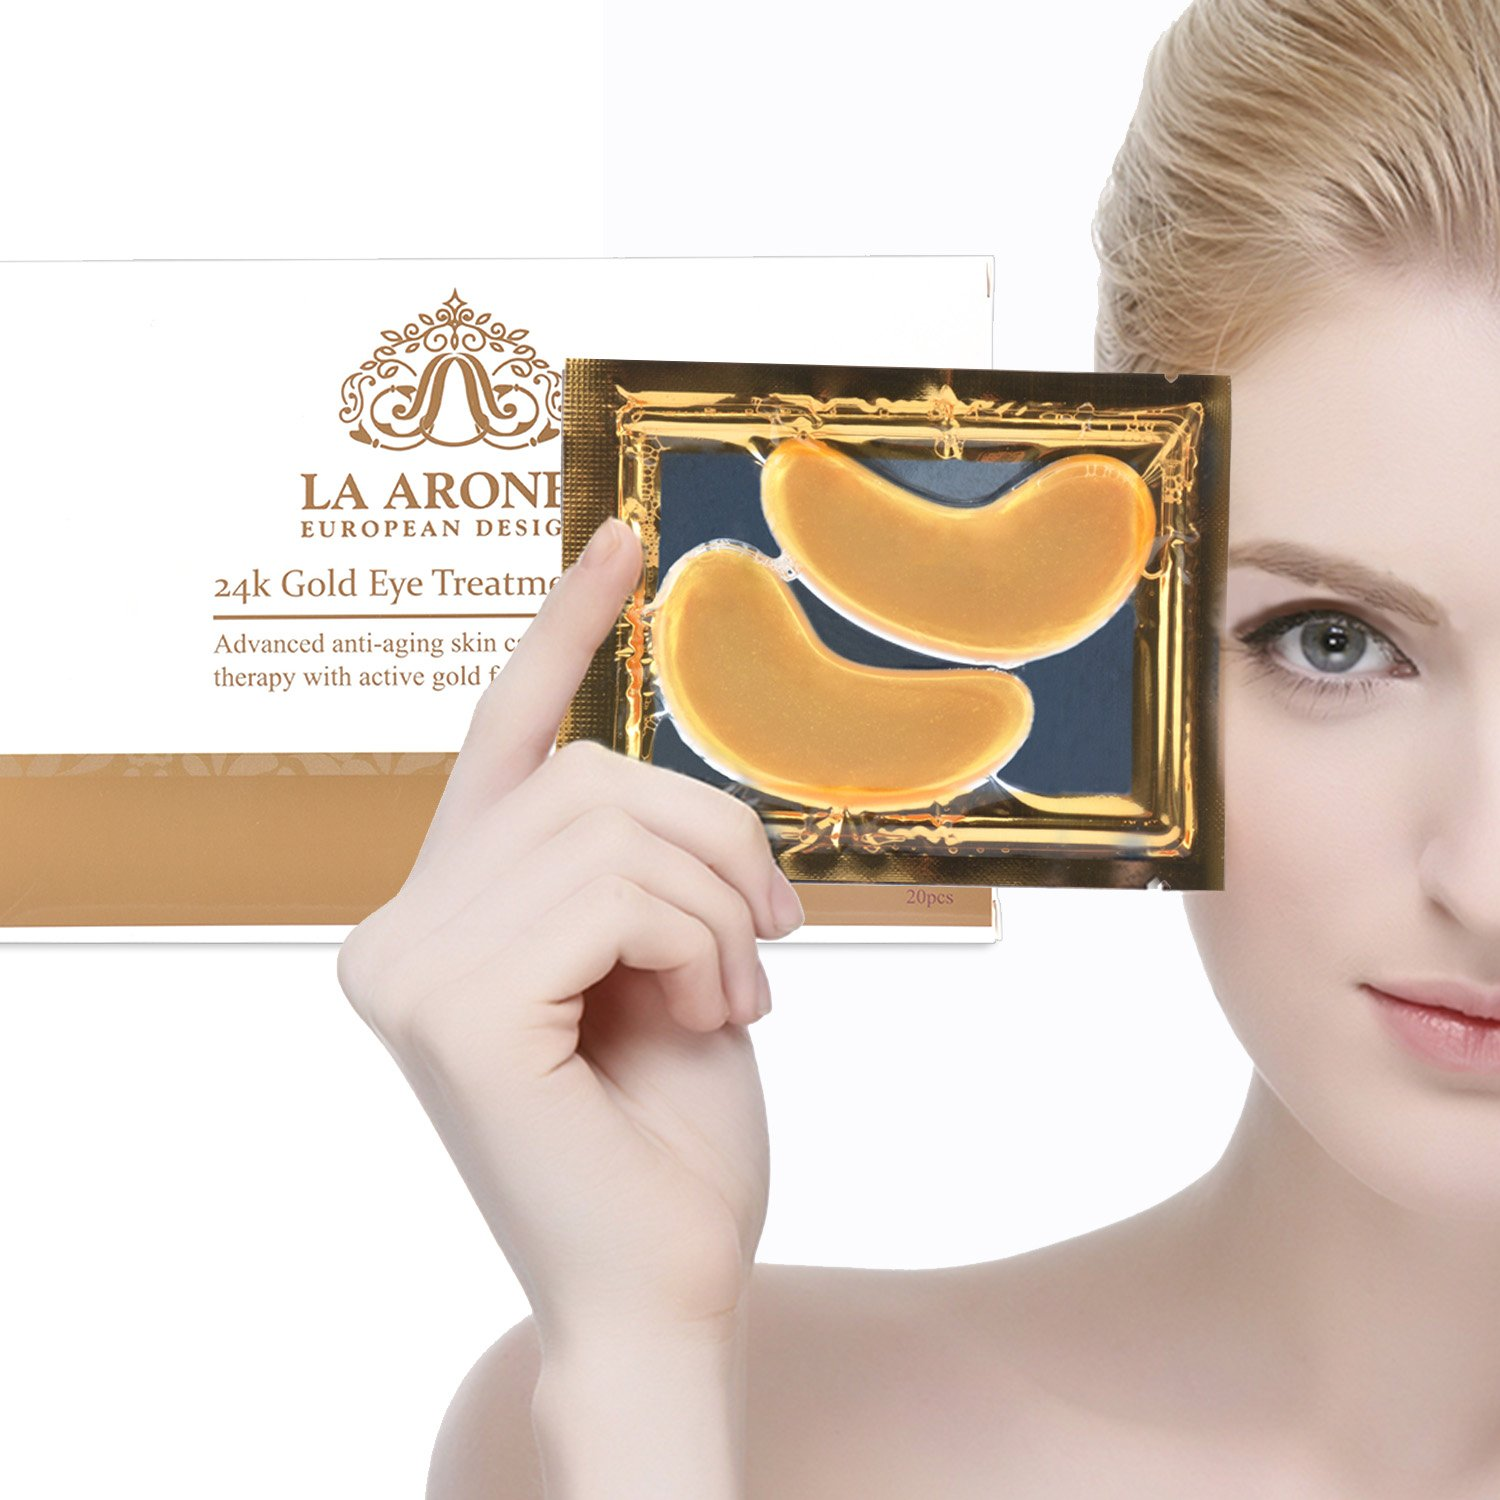 LA ARONET 24K Gold Eye Treatment Masks - (Pack of 20 Pairs) with Anti-Aging Wrinkle Reduction Collagen and Nutrients to Reduce Dark Circles, Bags, and Eye Puffiness, 5 EXTRA BONUS PAIRS included by LA ARONET (Image #9)